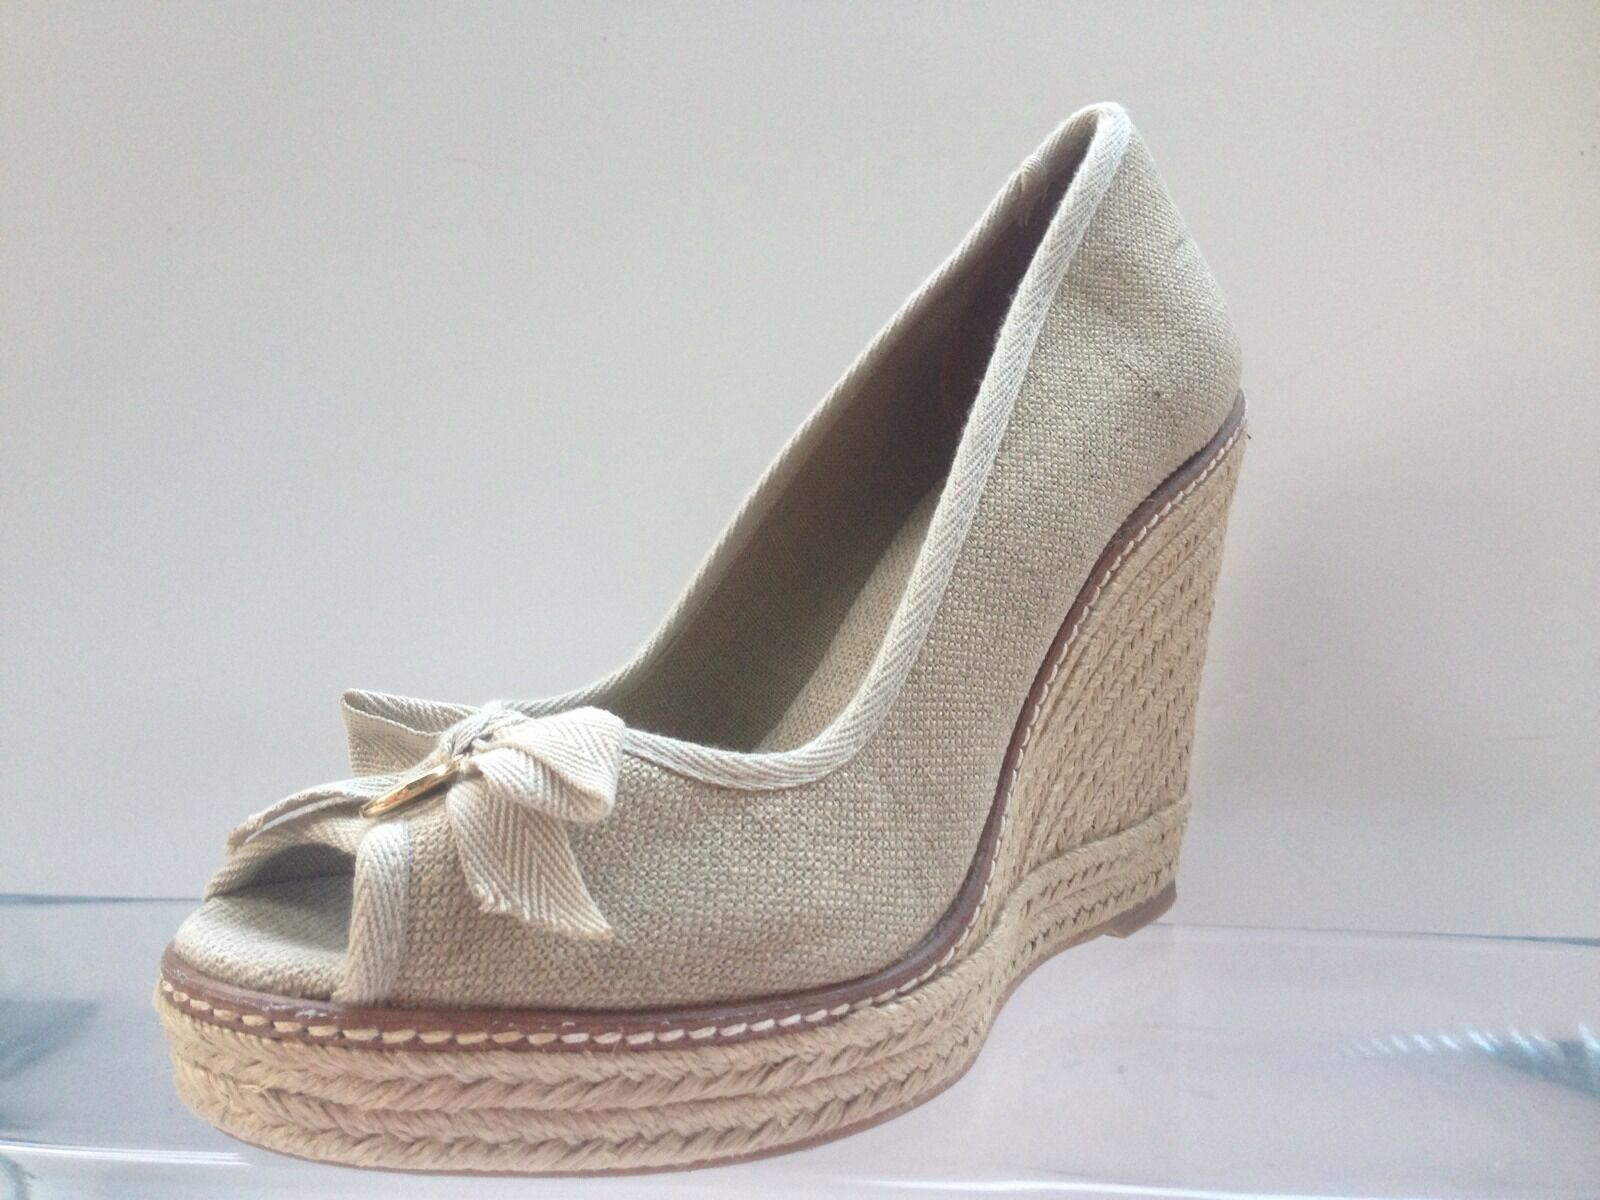 TORY BURCH JACKIE ESPADRILLE WEDGE SANDAL PEEP GOLD WASHED BEIGE SZ 9 1/2